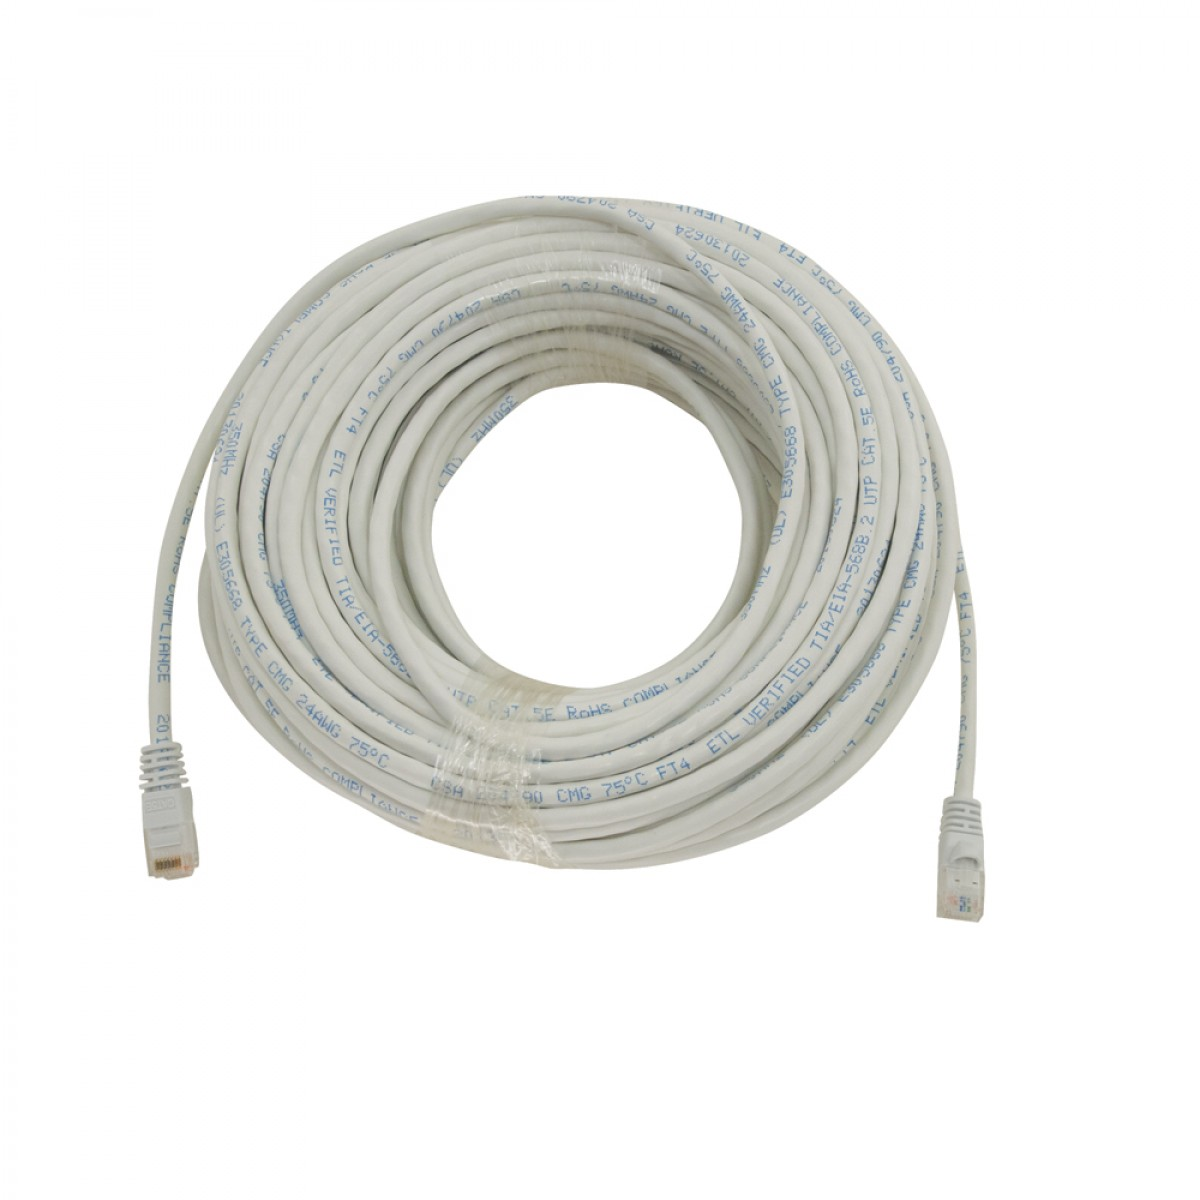 100 Cat5e Network Cable100 350 Mhz Stp Shielded Black Ethernet Patch Cable Bootless 15 Foot Part Number Cb5e100w 100ft Utp